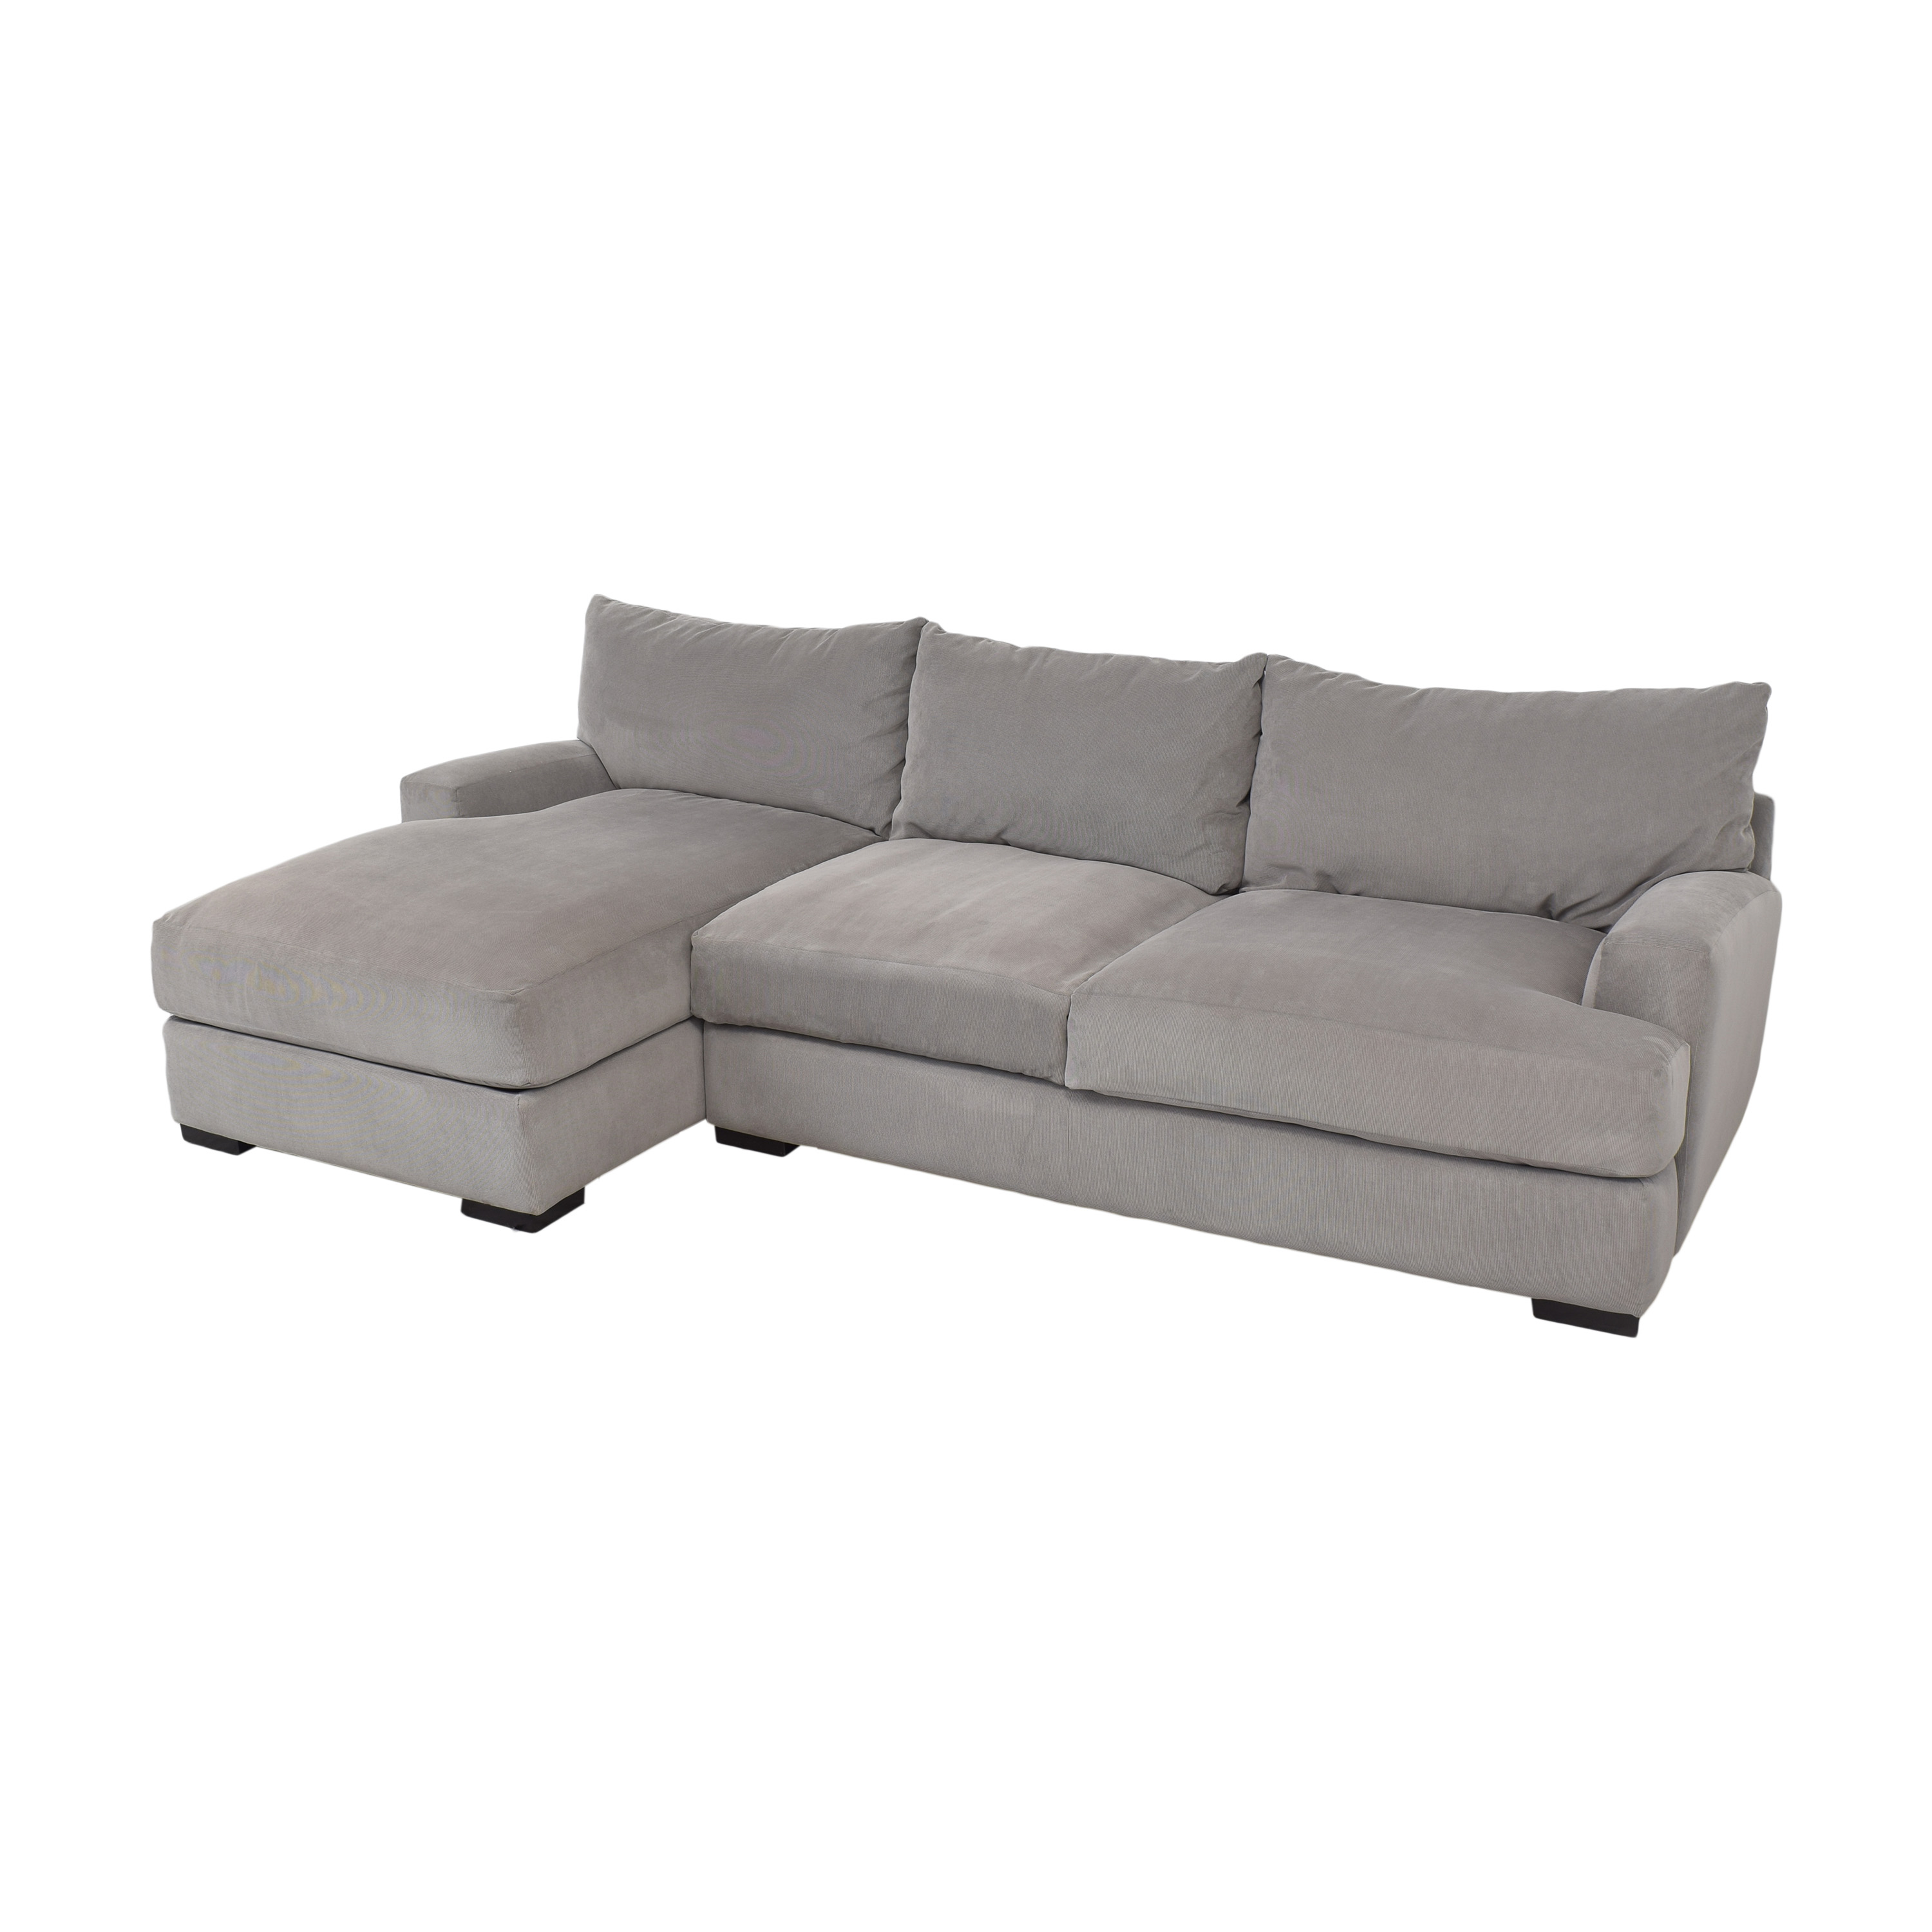 buy Macy's Rhyder Chaise Sectional Sofa Macy's Sectionals